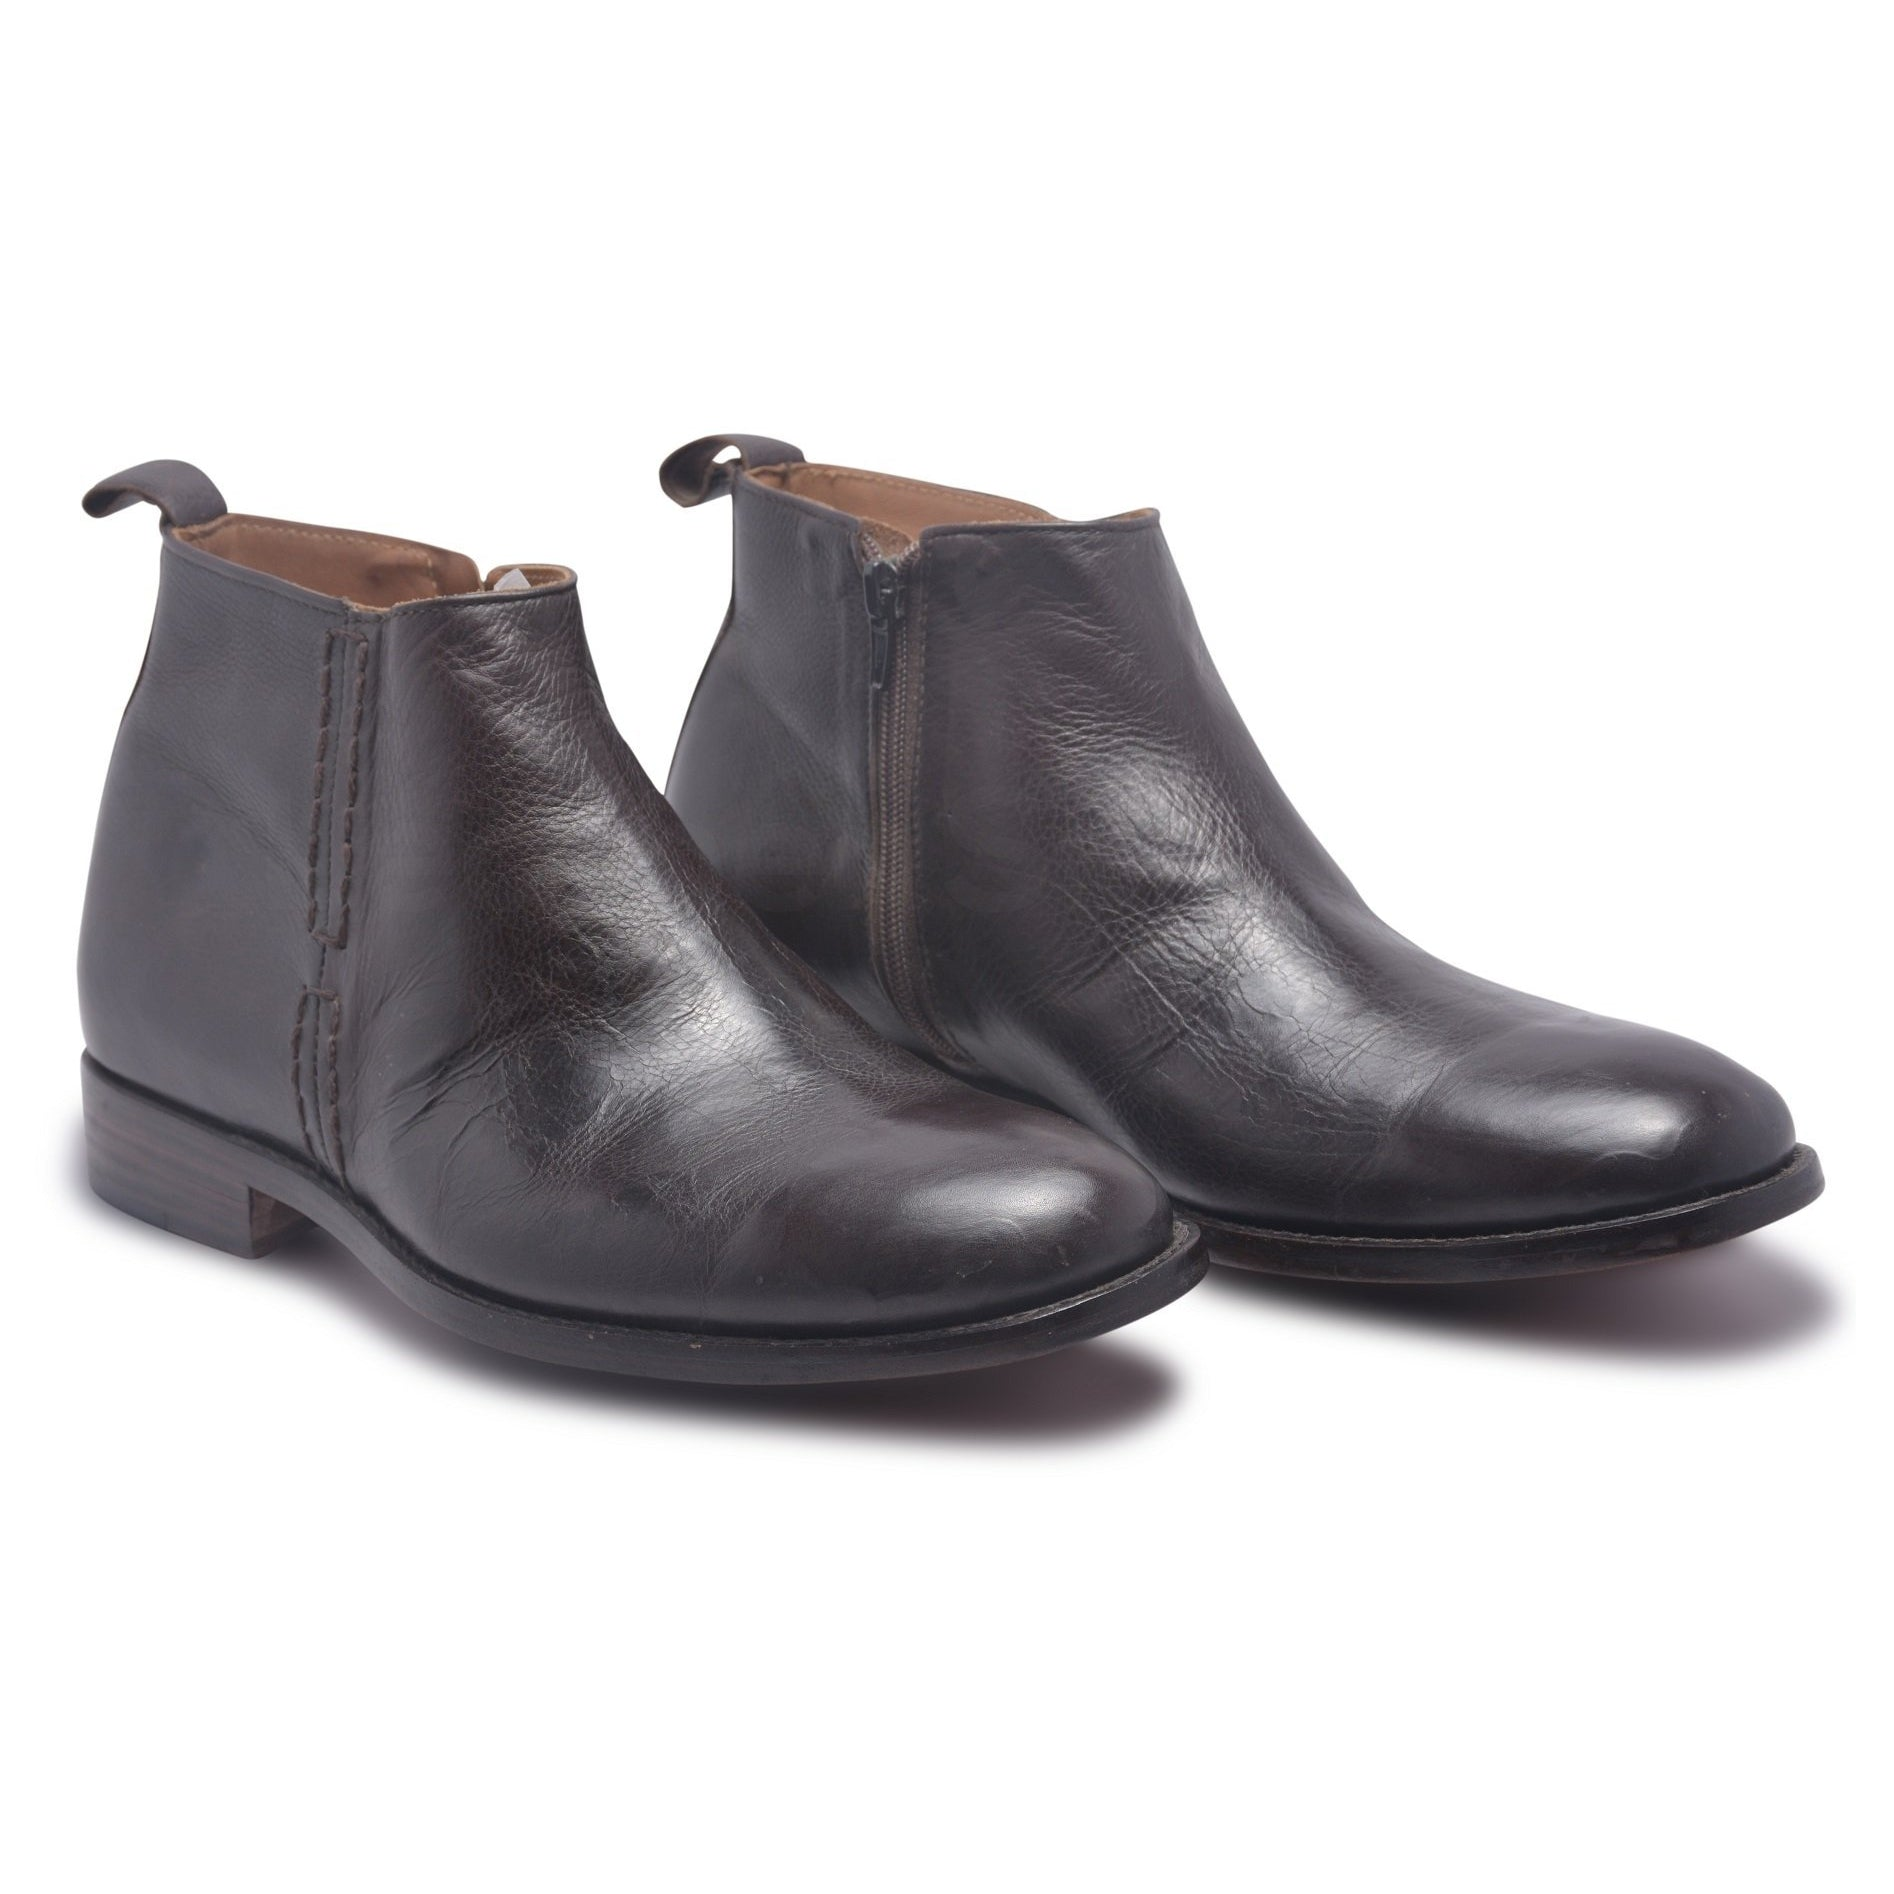 mens black leather zip up boots